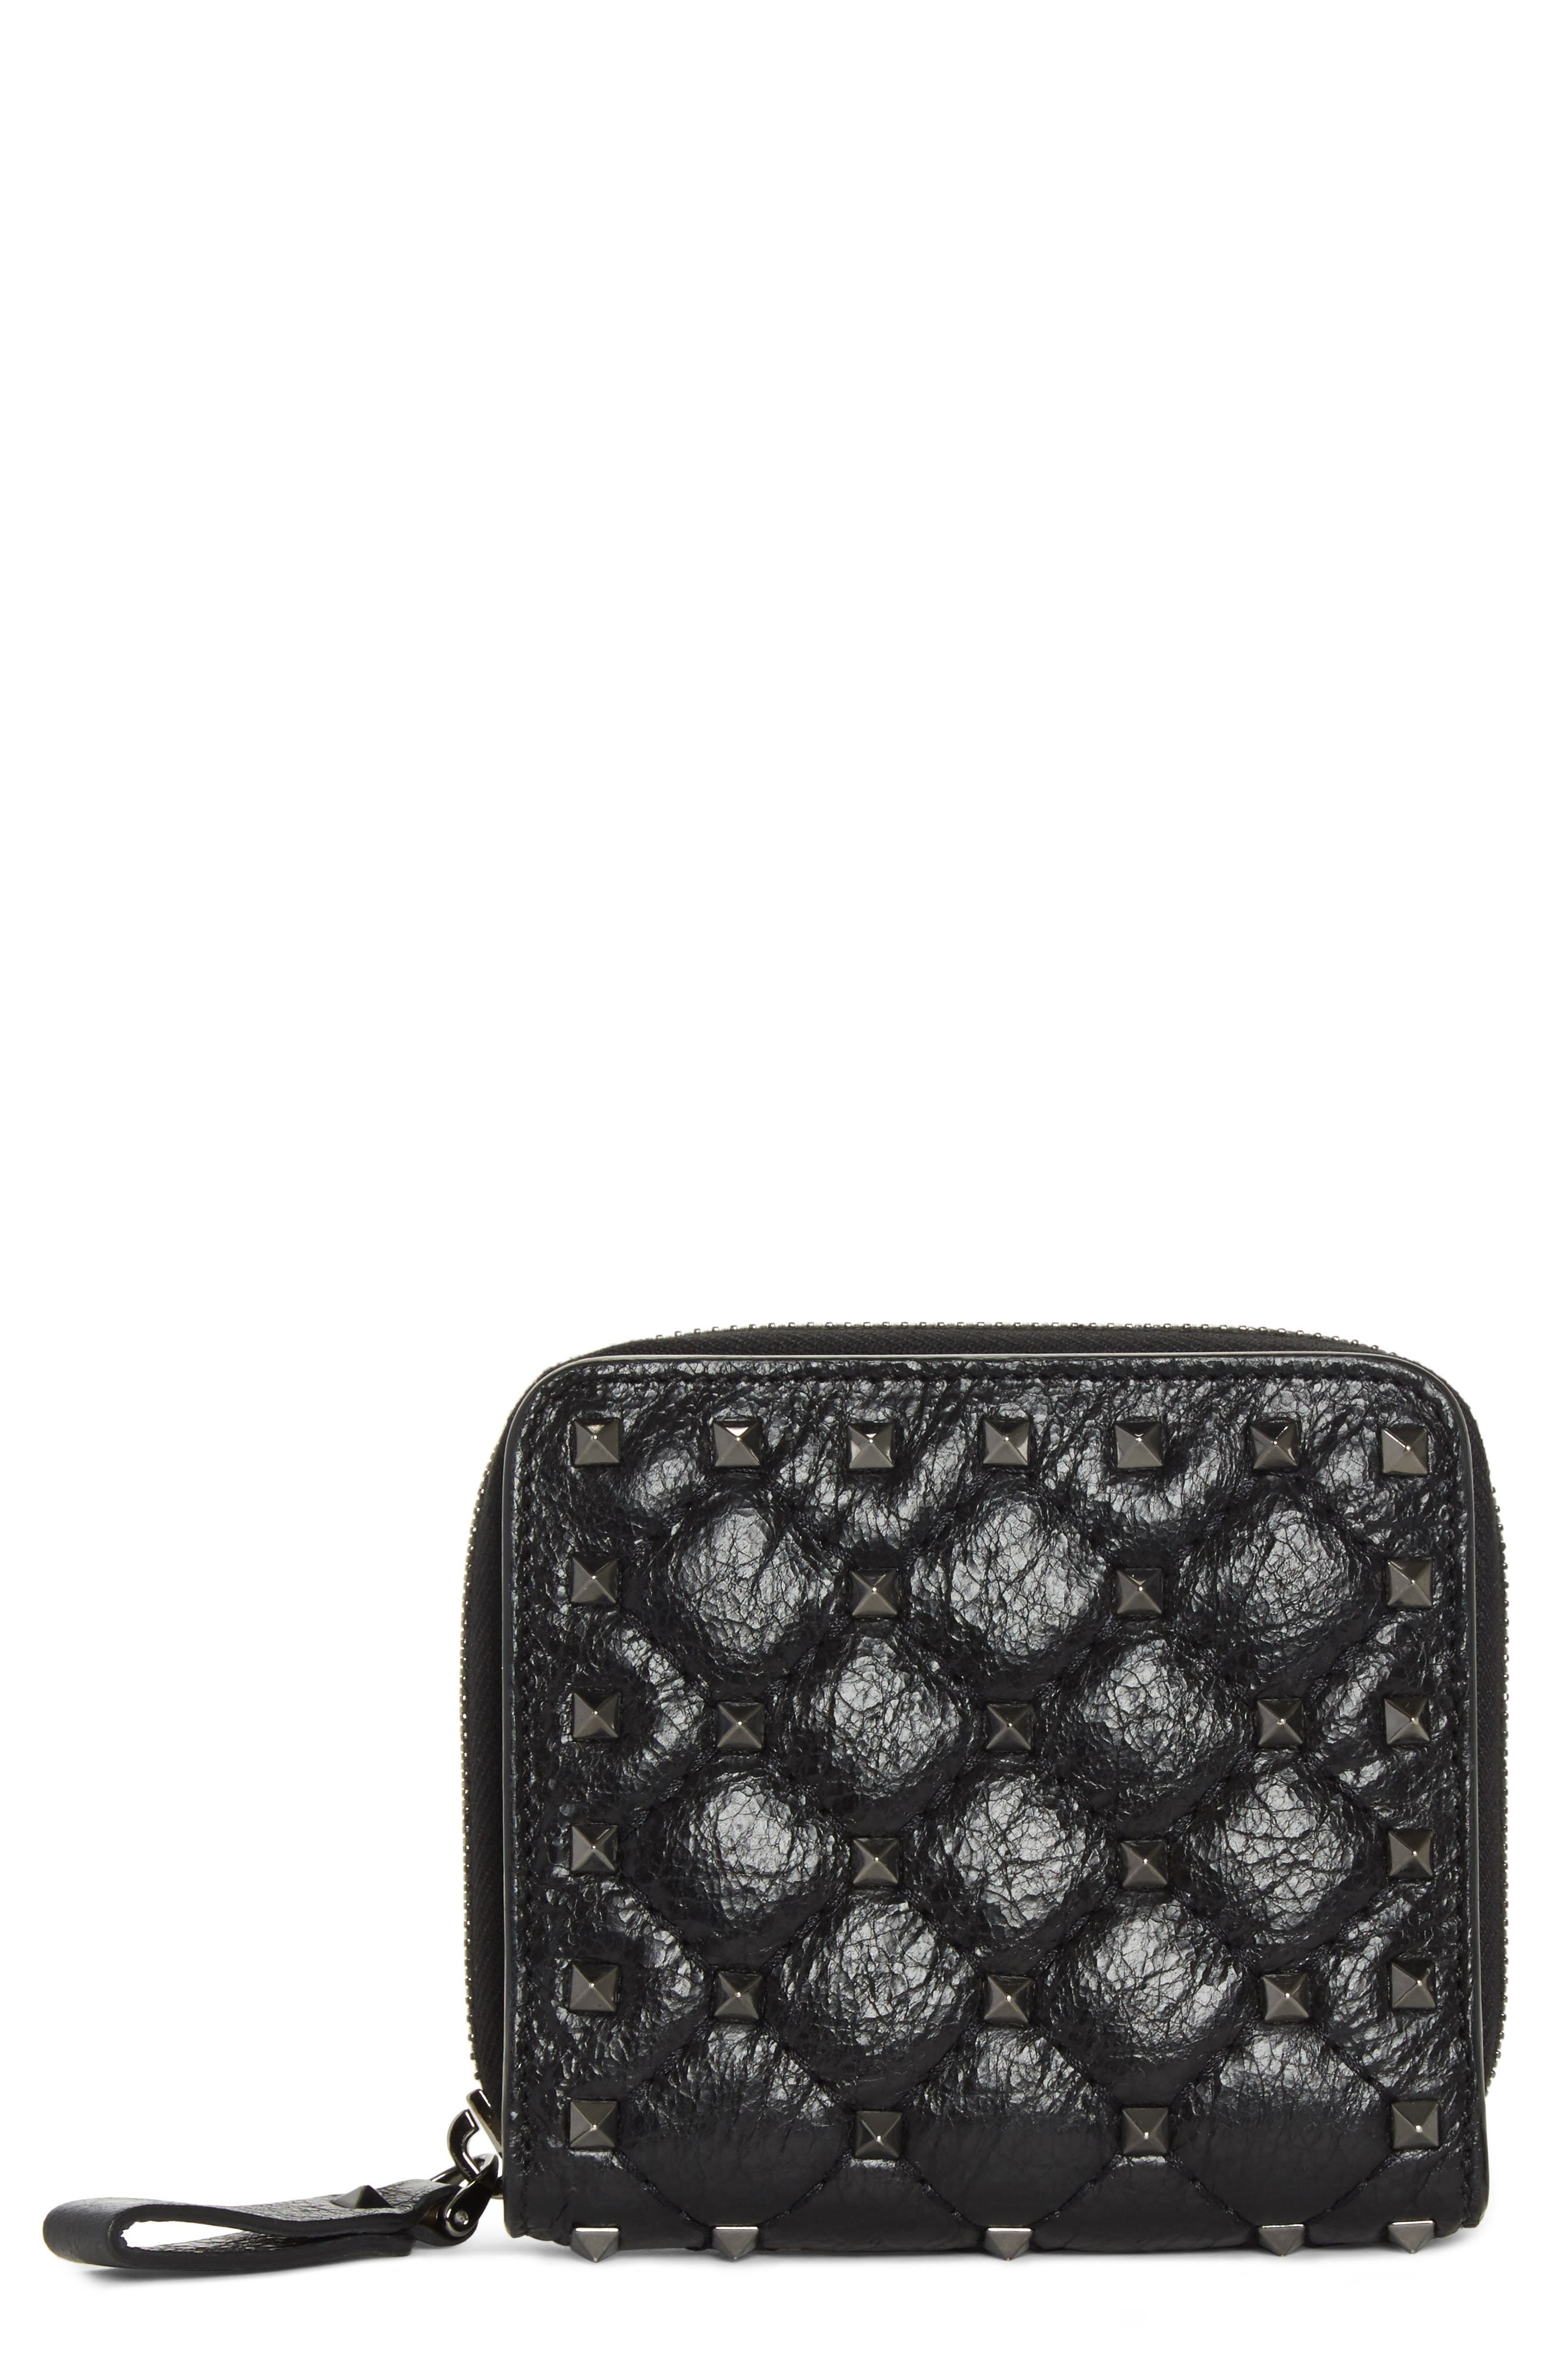 Main Image - VALENTINO GARAVANI Rockstud Leather French Wallet